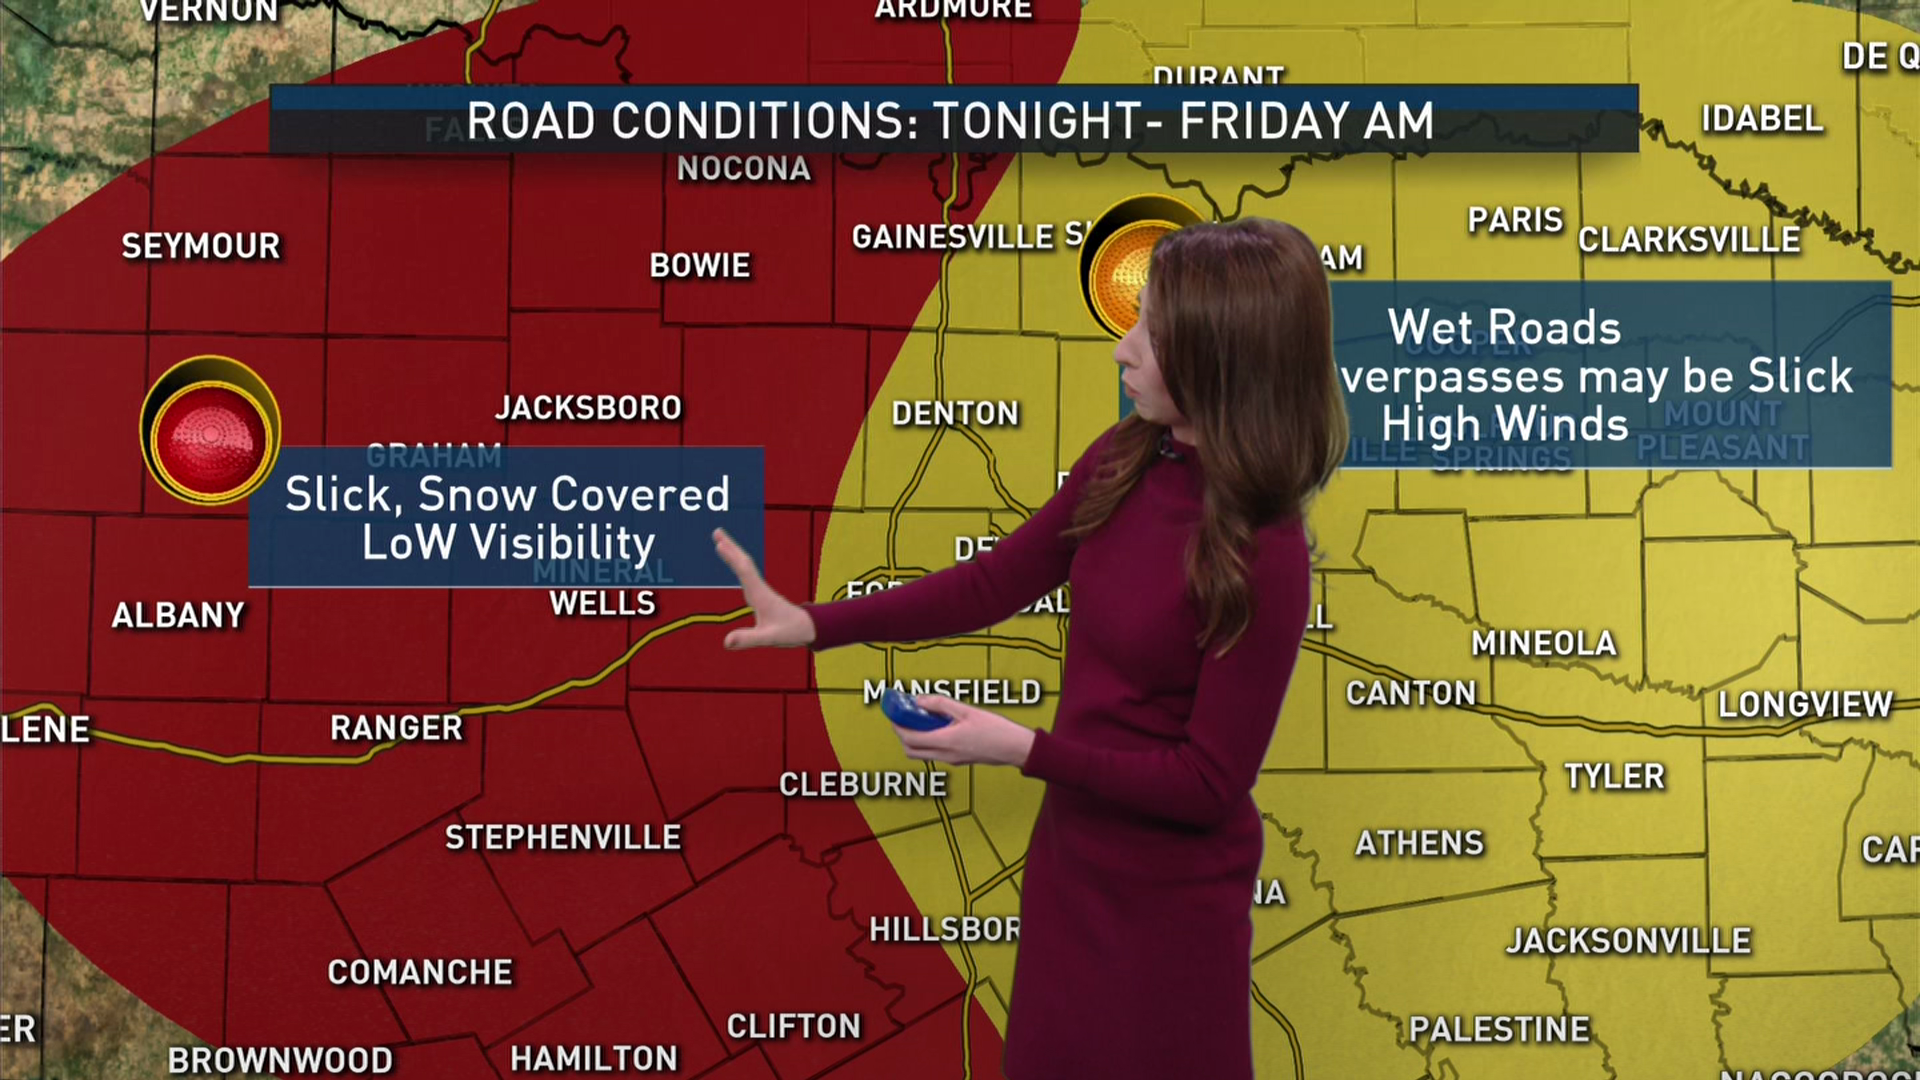 What to Expect on the Roads Thursday Afternoon